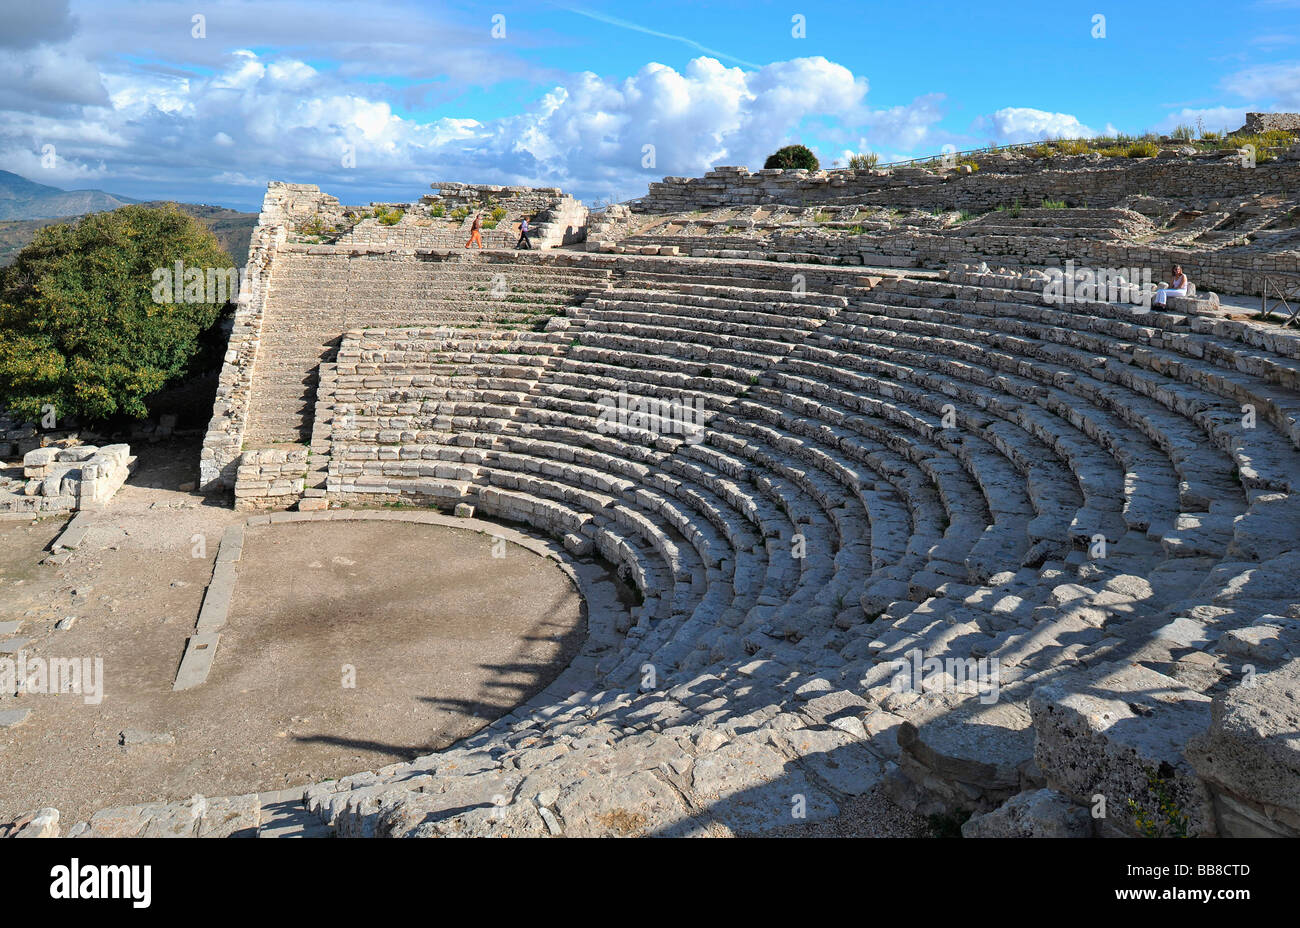 Greek theater, 3rd cent. BC at the temple of Segesta, Syracuse, Sicily, Italy Stock Photo